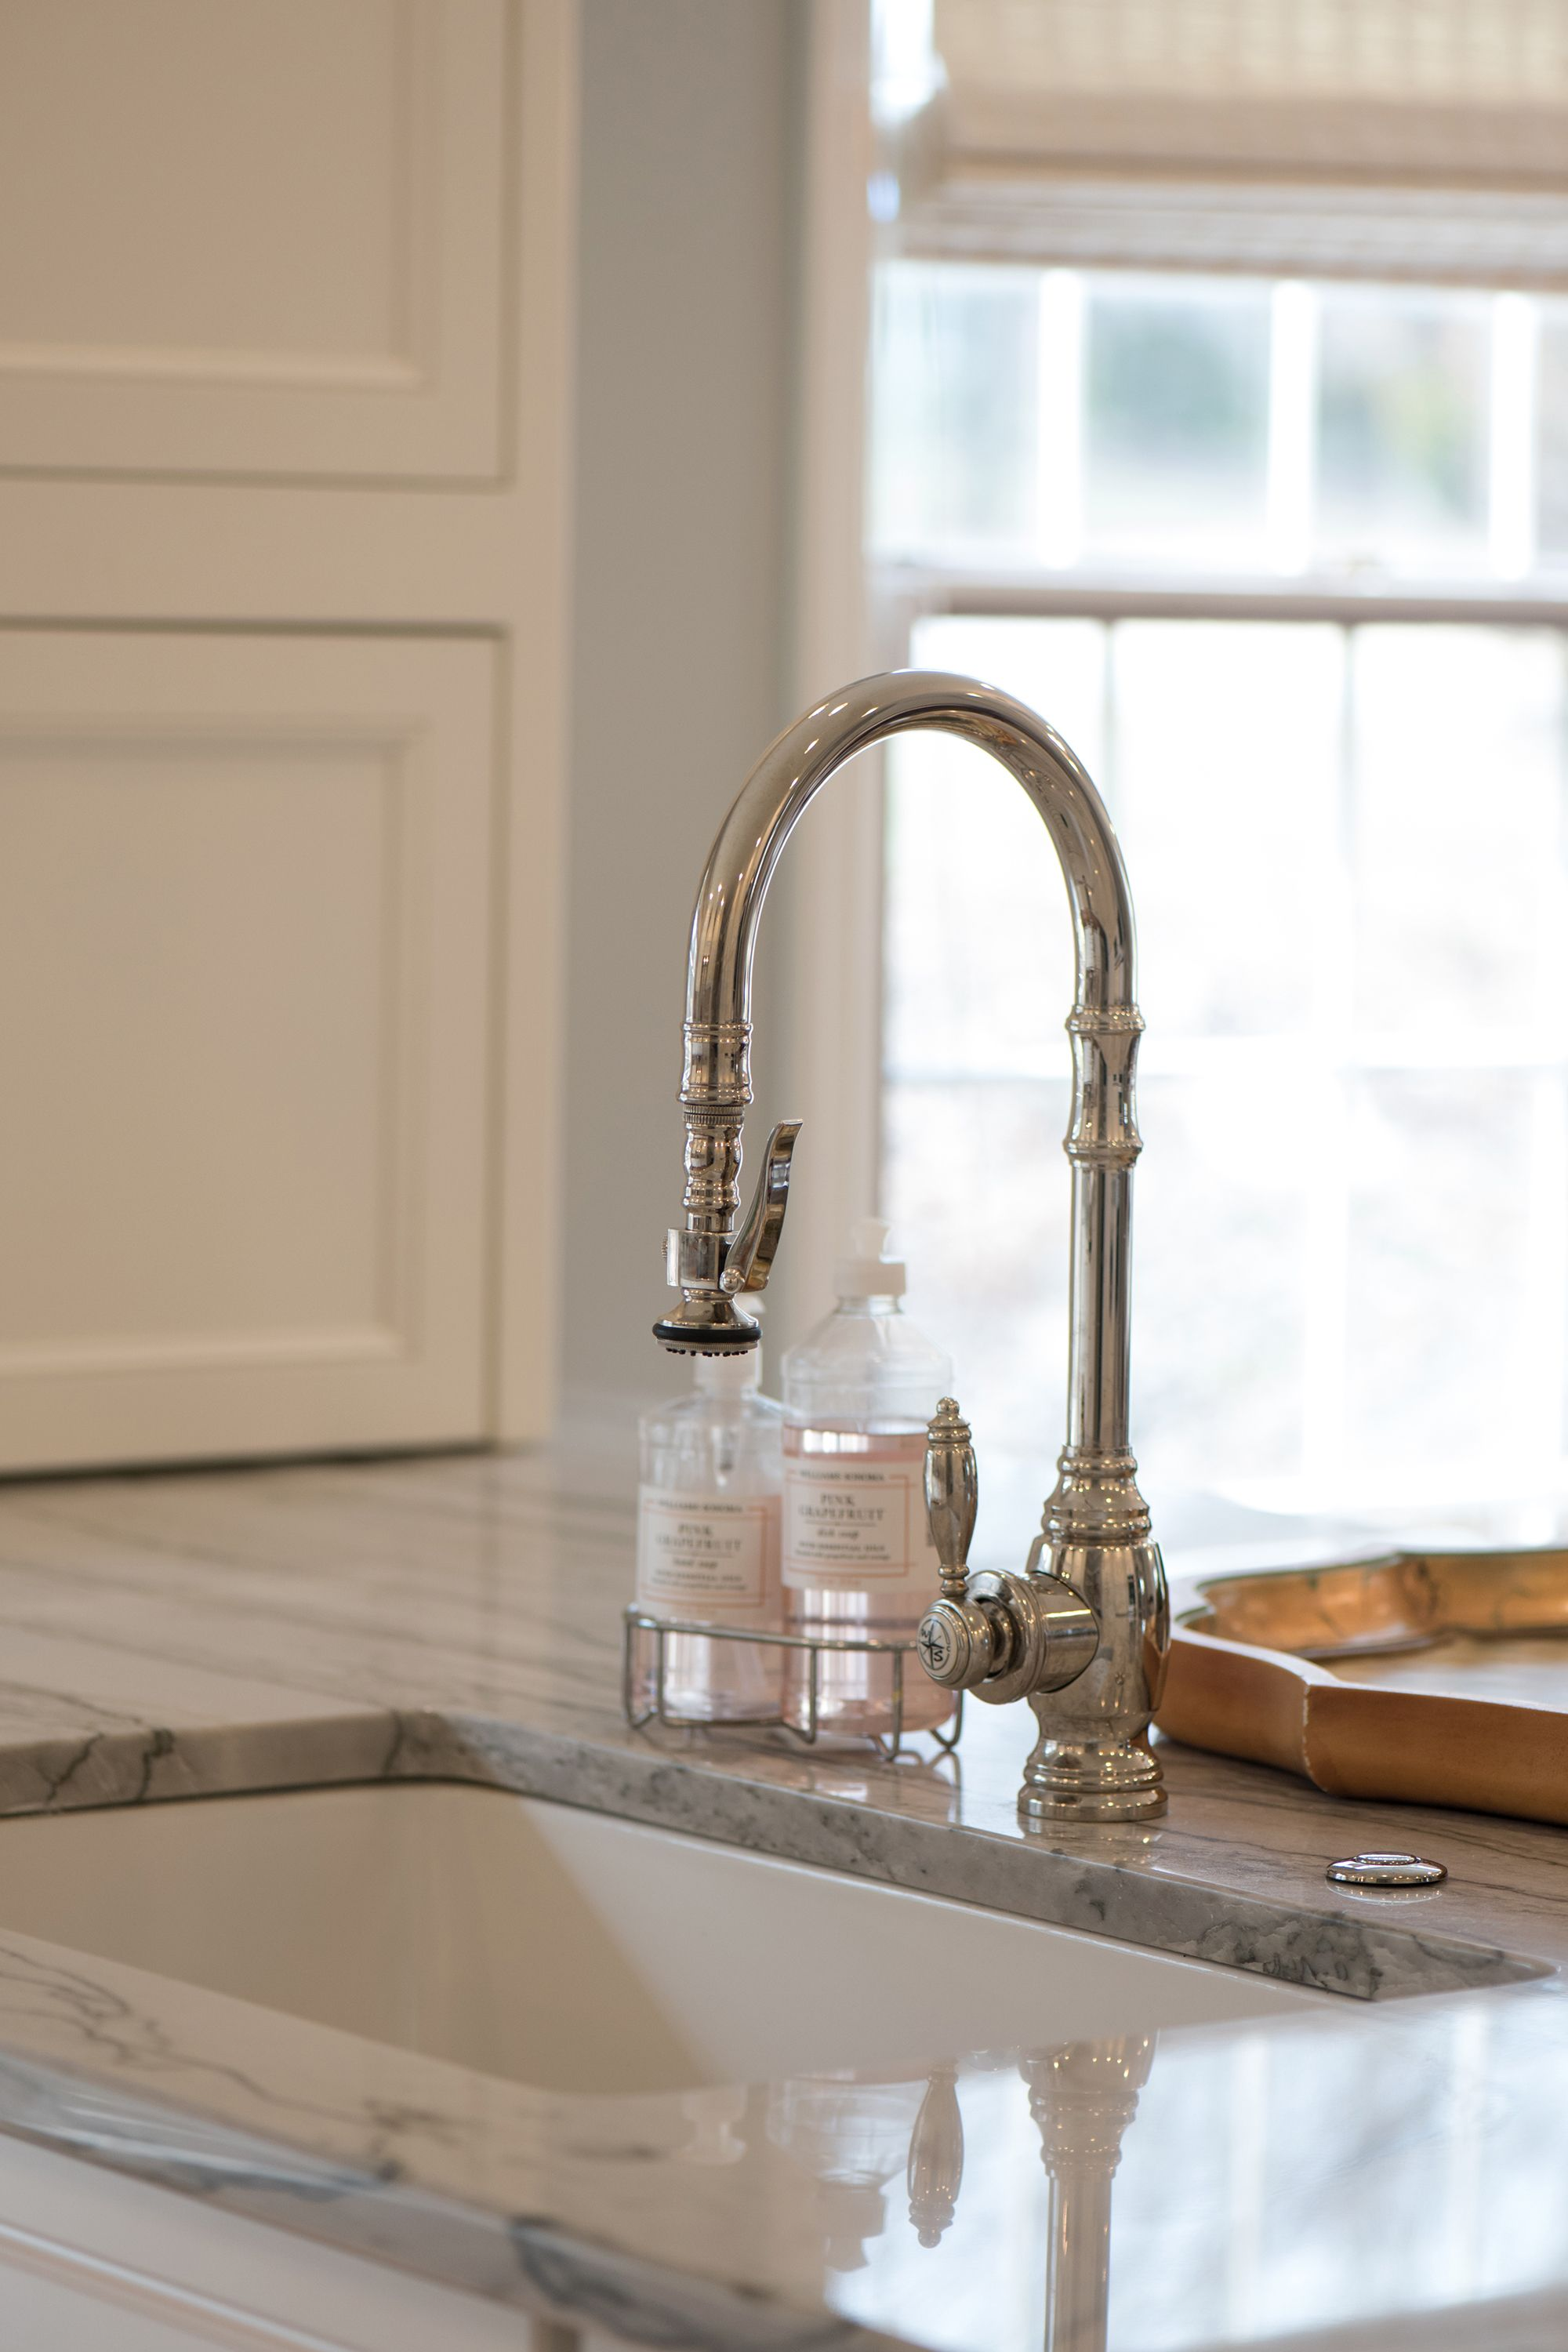 Hollow Drive Project Jarrett Design Waterstone Plp Pulldown Faucet In Polished Nickel Polished Nickel Kitchen Faucet Kitchen Faucet Farmhouse Kitchen Taps